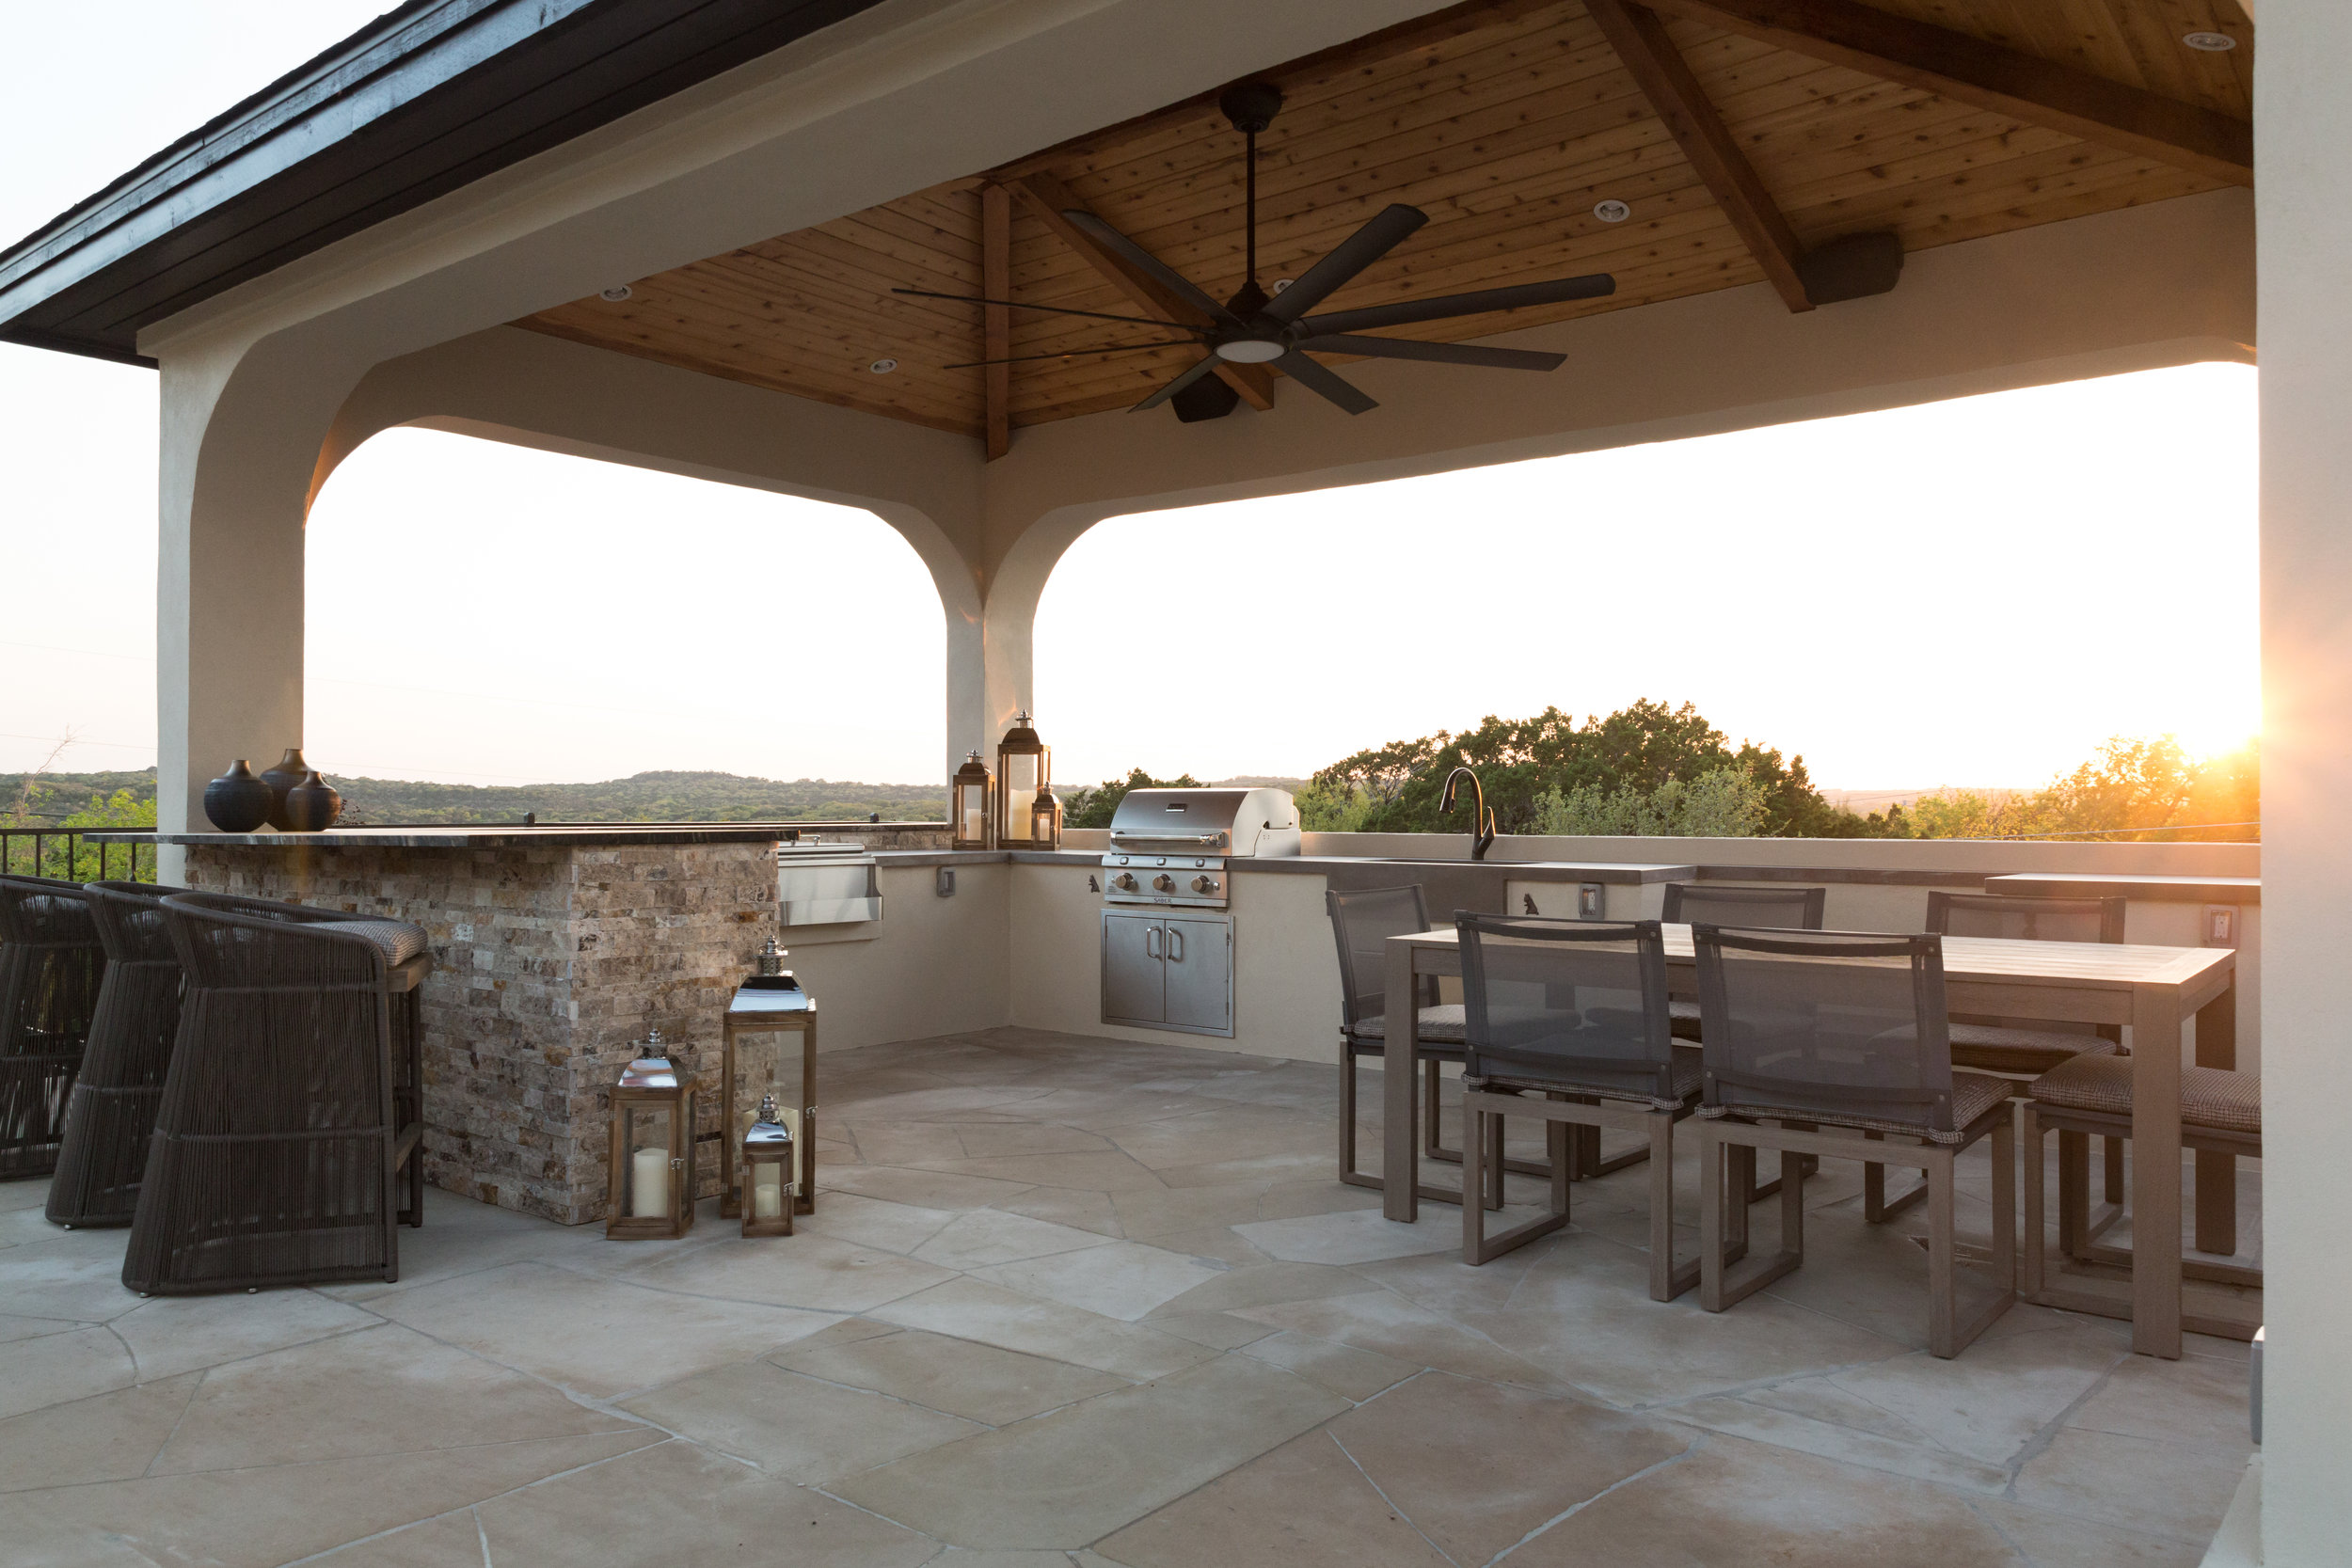 Cabana Bar, Kitchen, and Dining Table